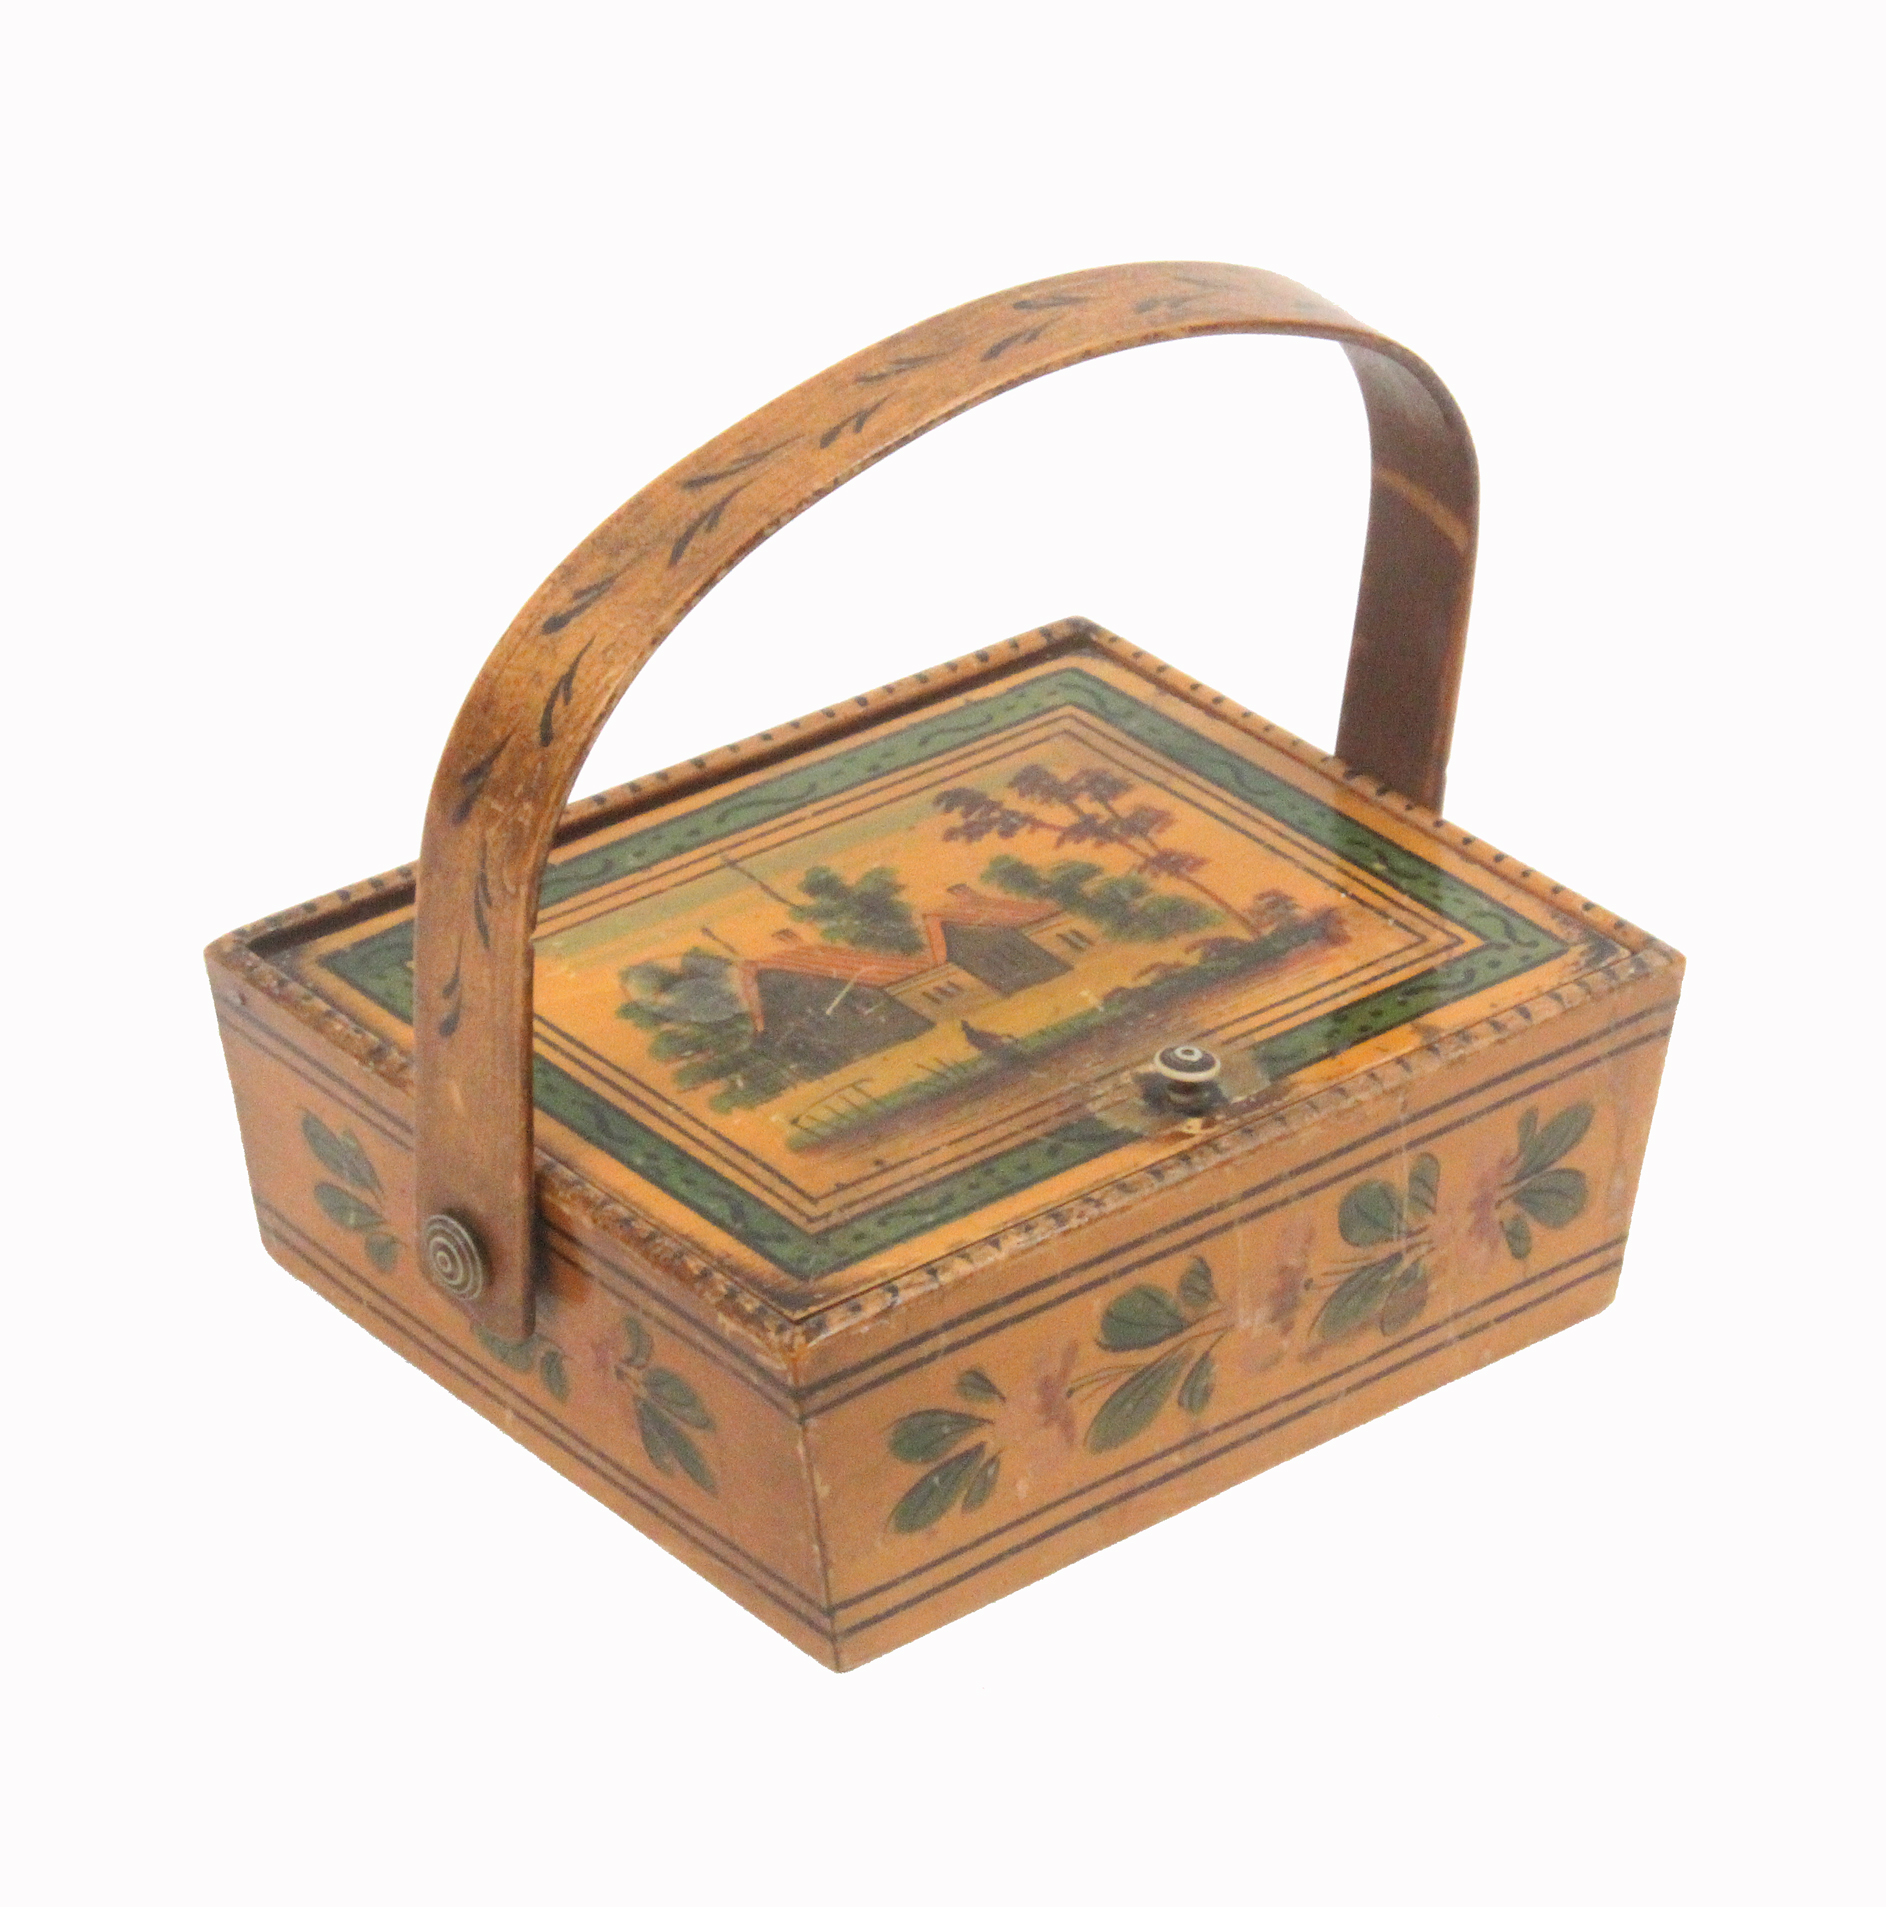 Lot 59 - An early 19th Century whitewood sewing pannier in the Tunbridge style, the angled sides painted with